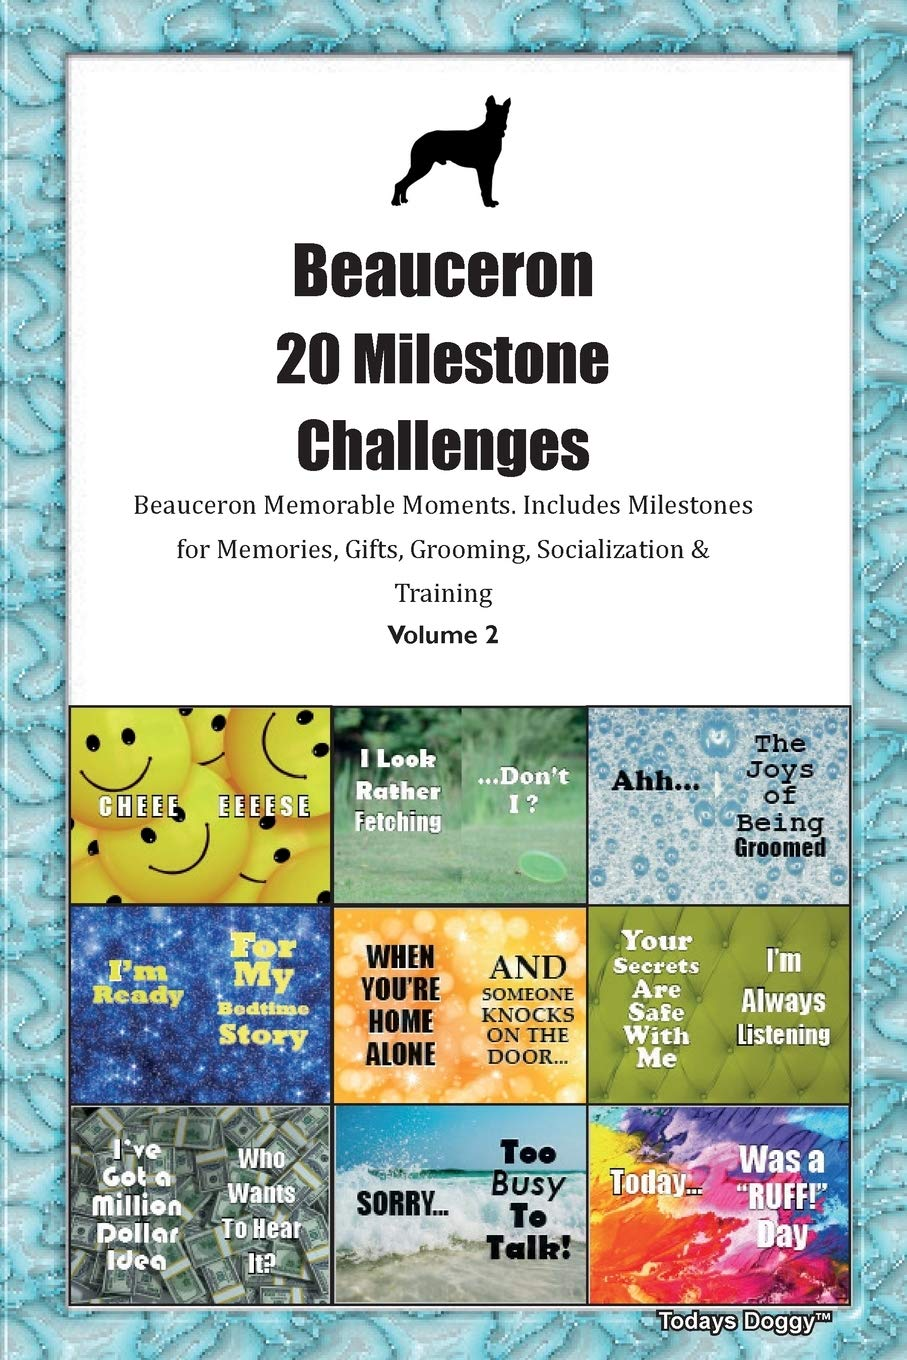 Beauceron 20 Milestone Challenges Beauceron Memorable Moments.Includes Milestones for Memories, Gifts, Grooming, Socialization & Training Volume 2